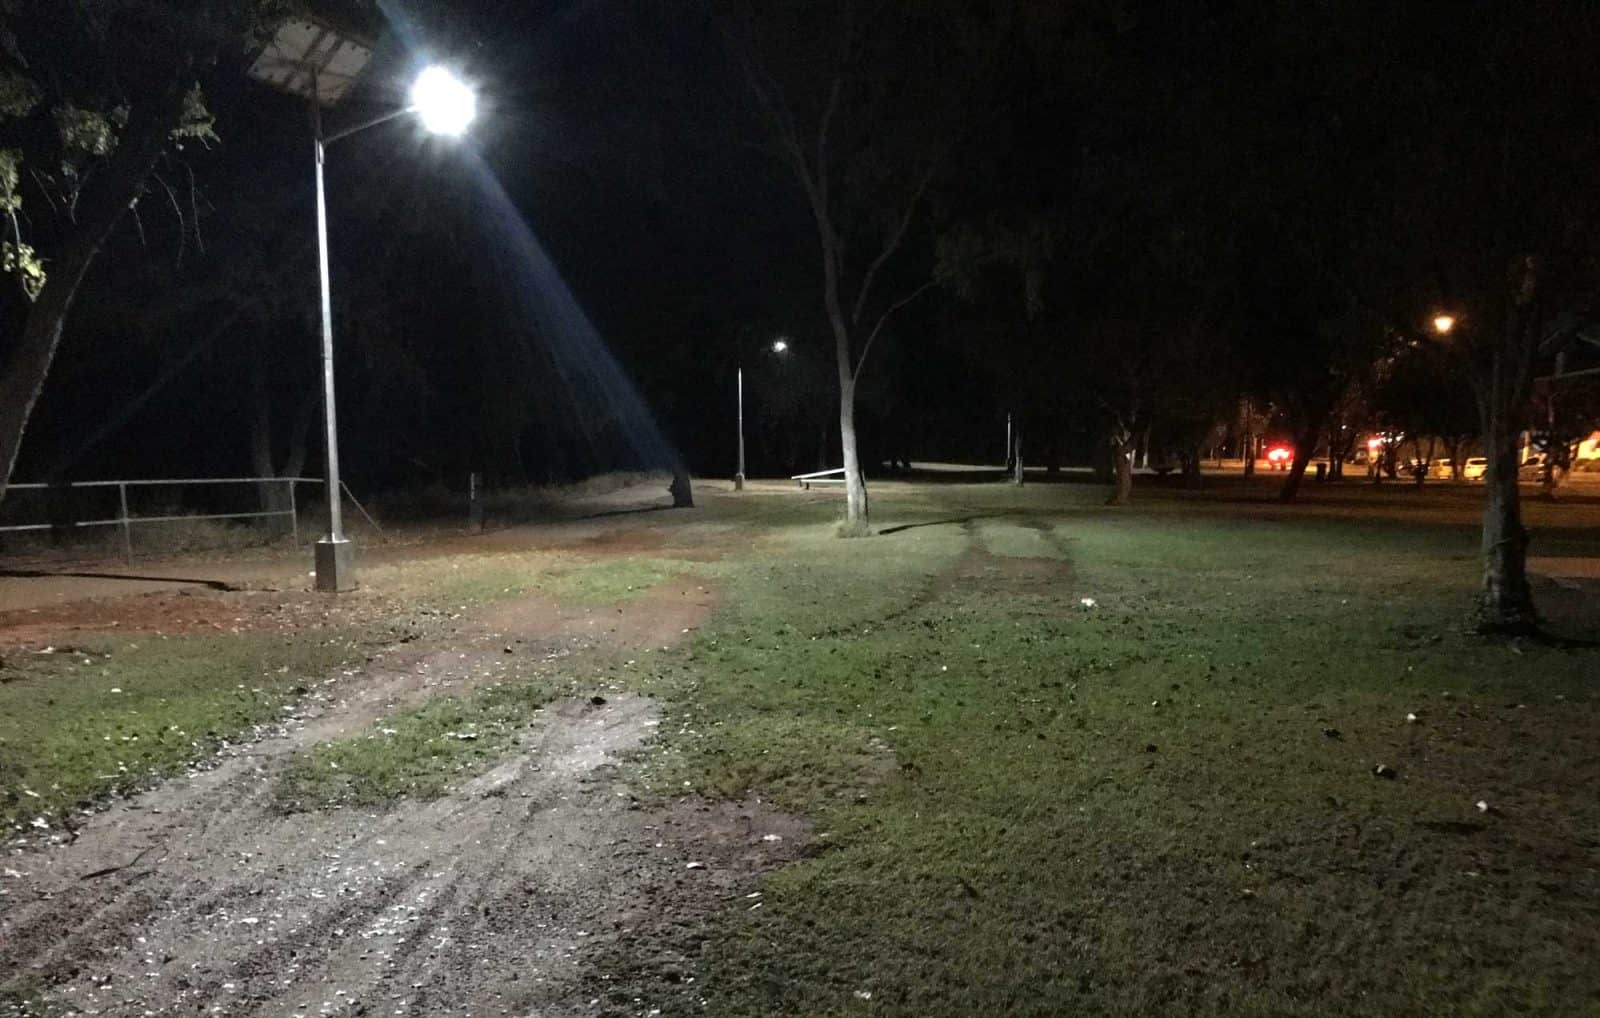 solar street light in Katherine Parklands